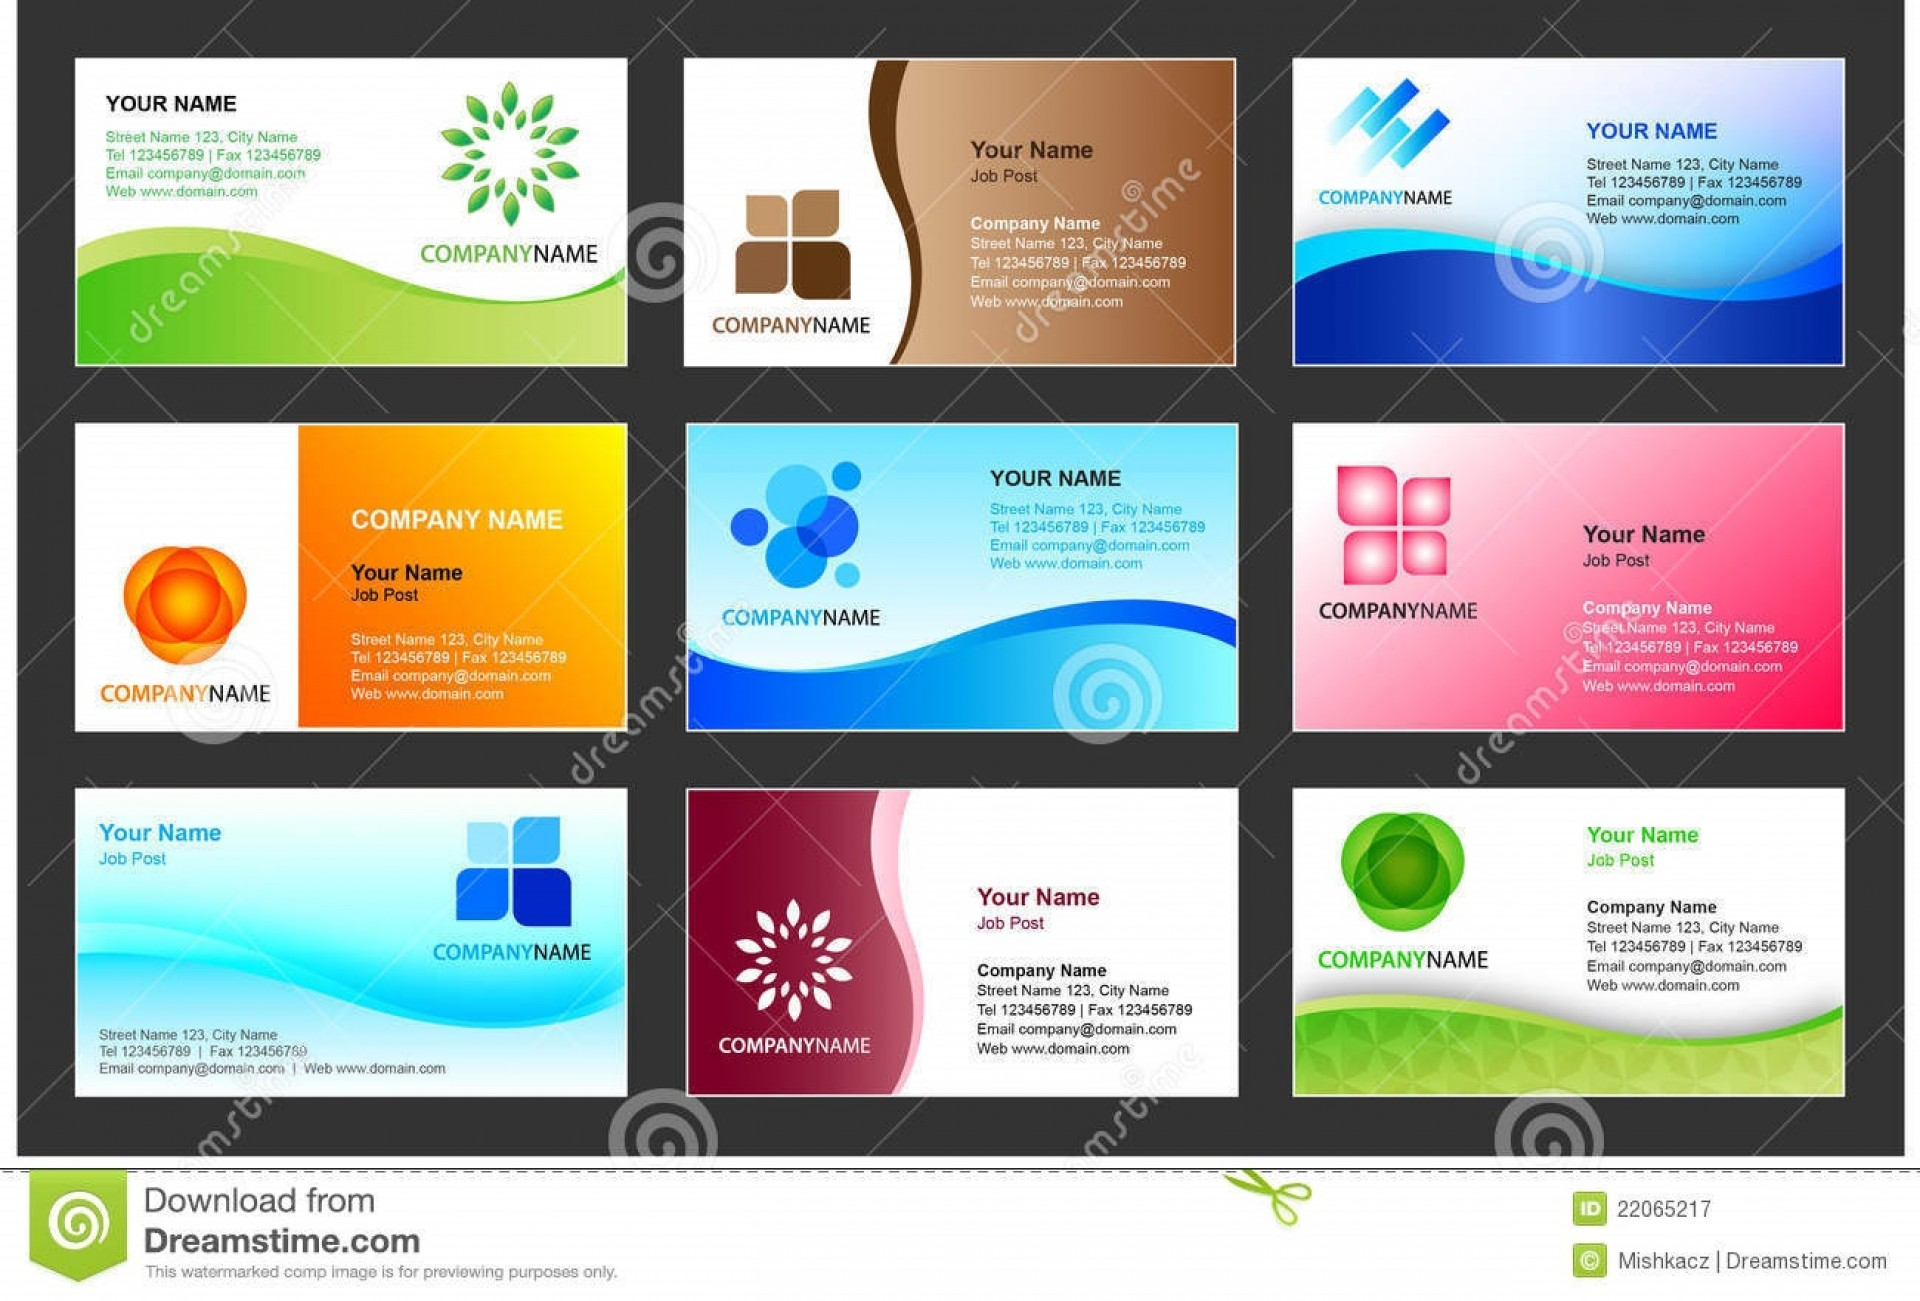 002 Phenomenal Free Busines Card Design Template  Templates Visiting Download Psd Photoshop1920